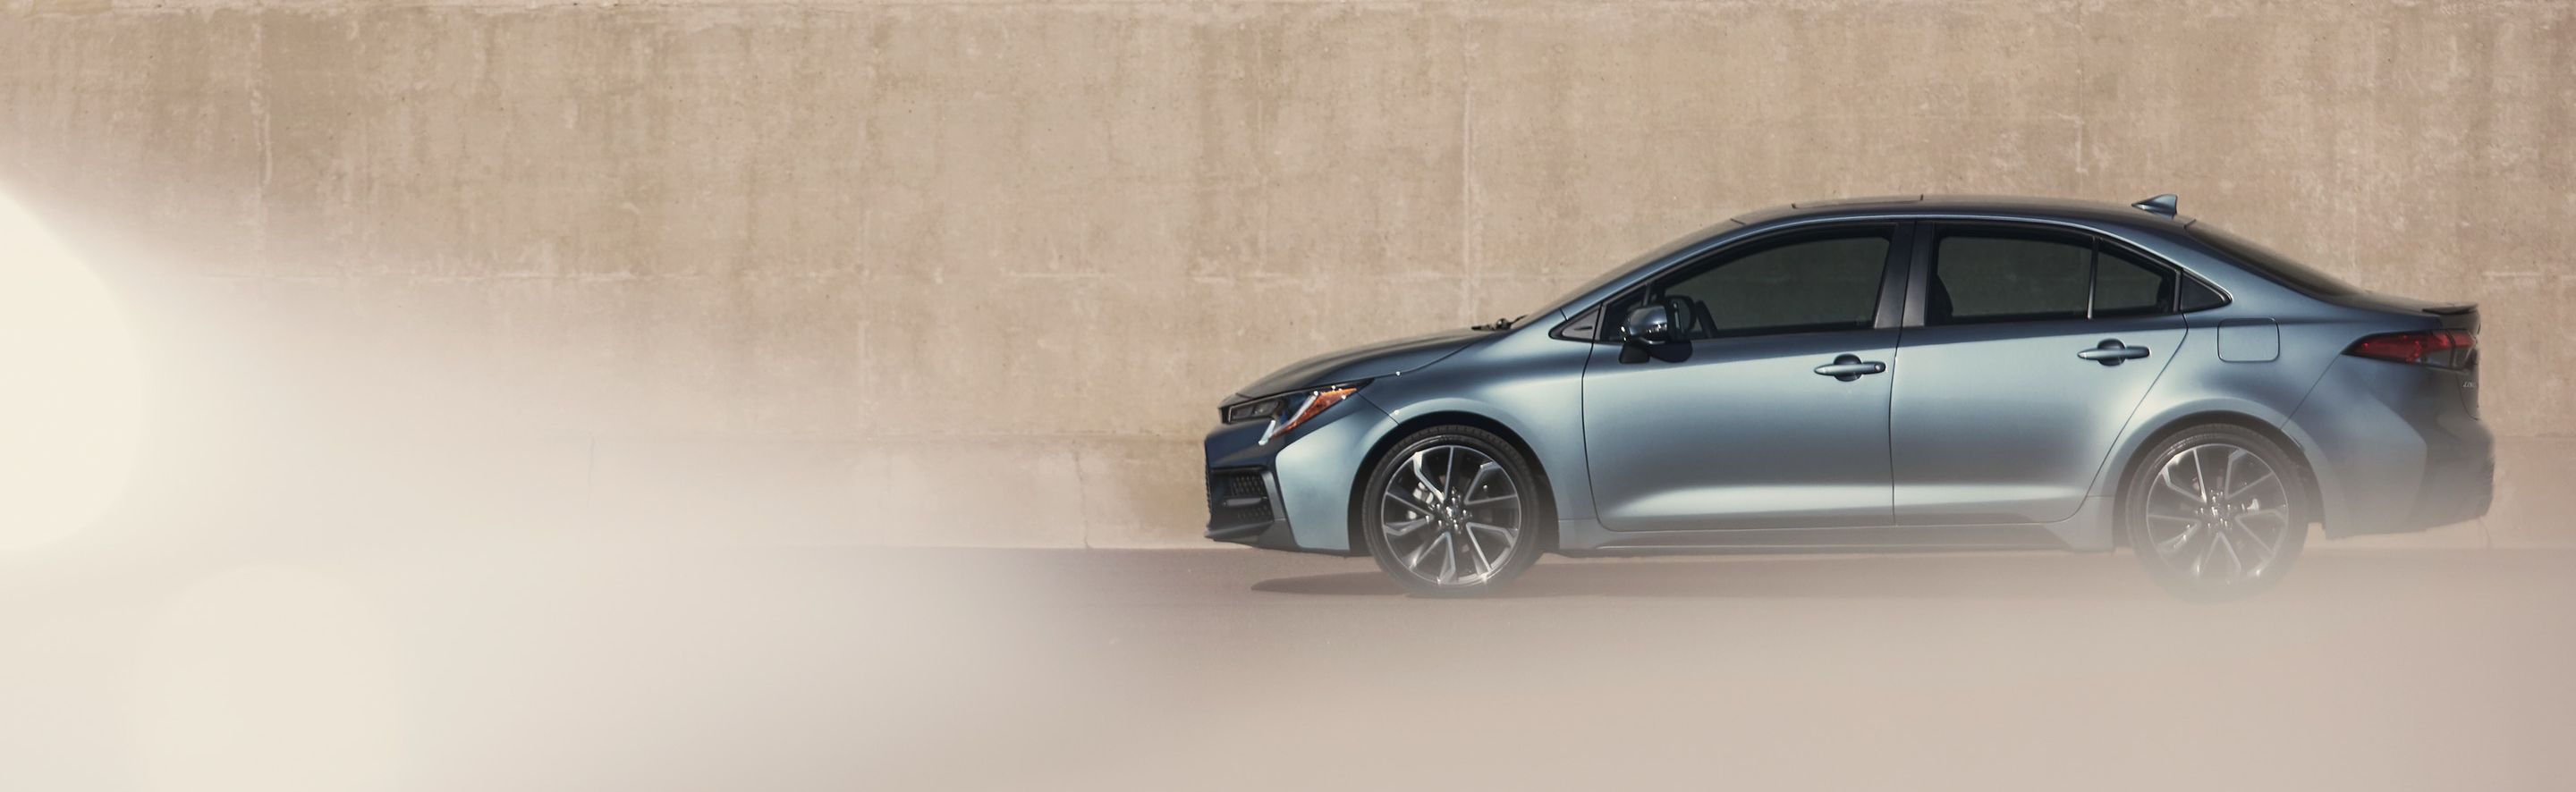 2020 Toyota Corolla vs 2019 Honda Civic near Merriam, KS, 66203